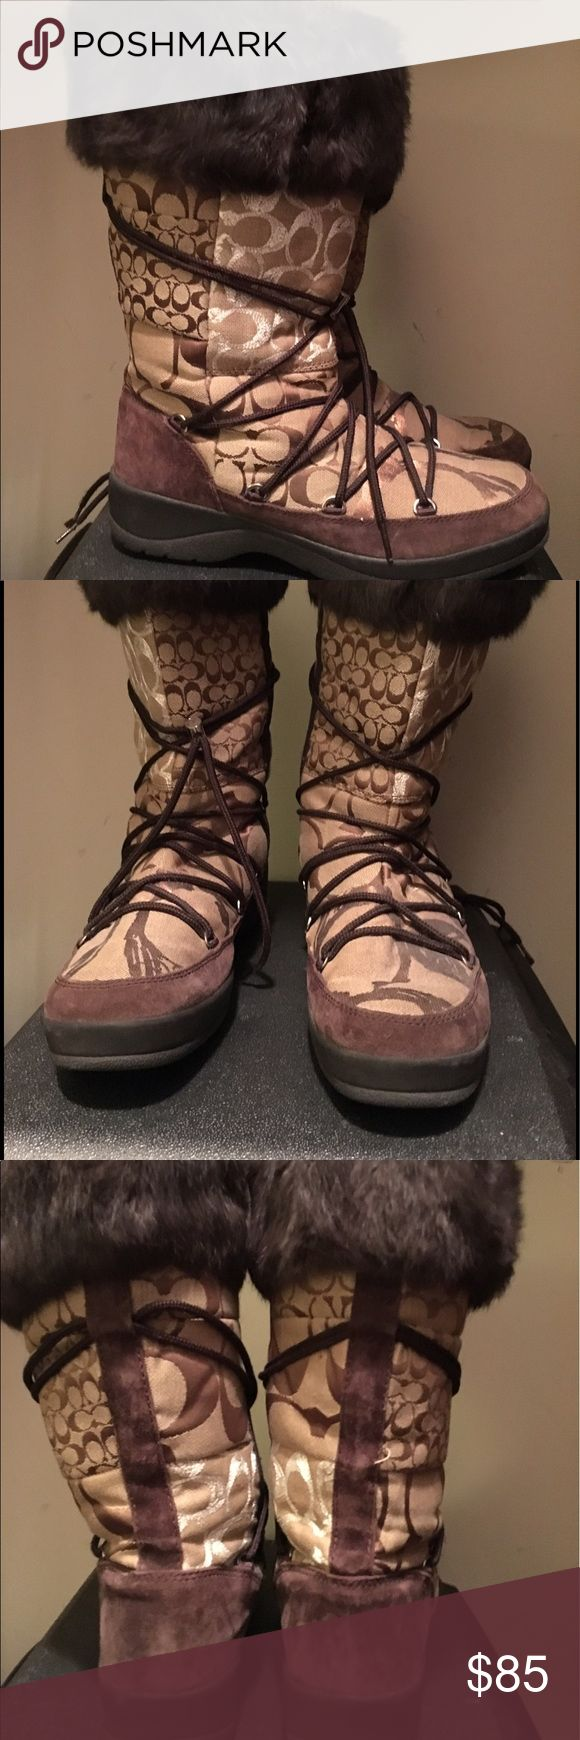 Authentic Coach Boots- Size 10 Like new condition. No visble wear, marks, or stains. Worn once or twice Coach Shoes Winter & Rain Boots